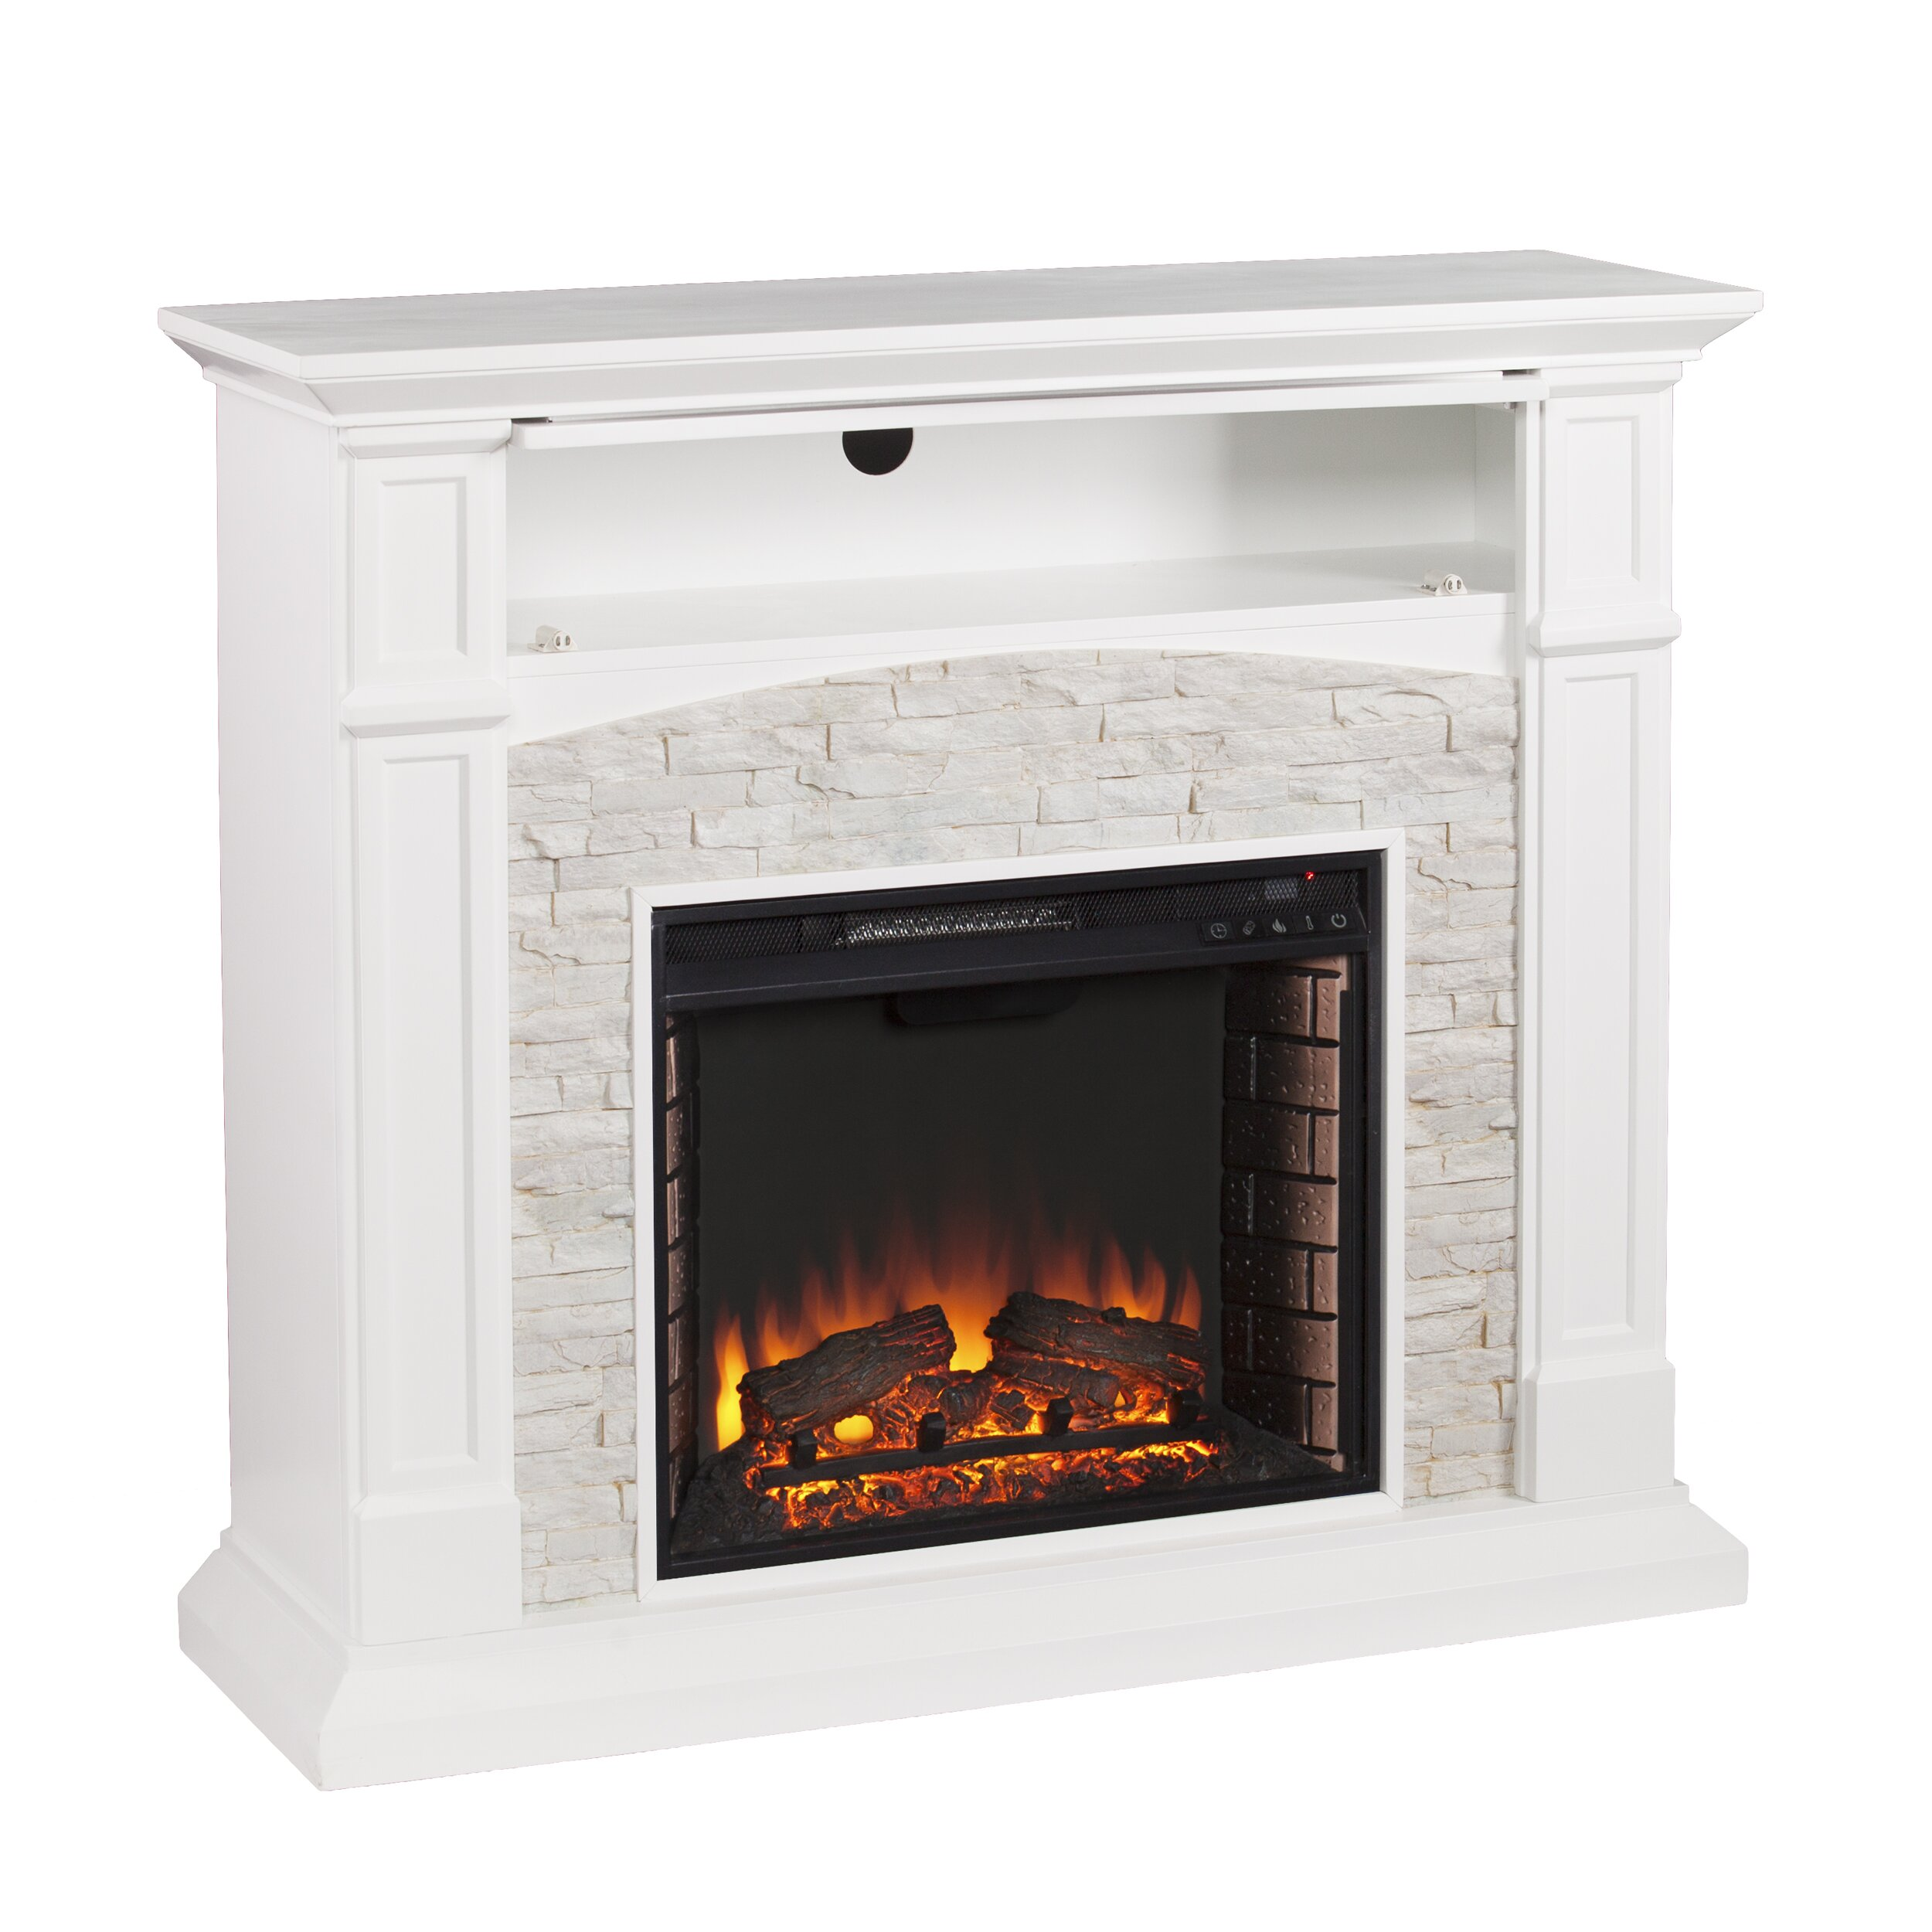 bjs electric fireplace image collections home fixtures